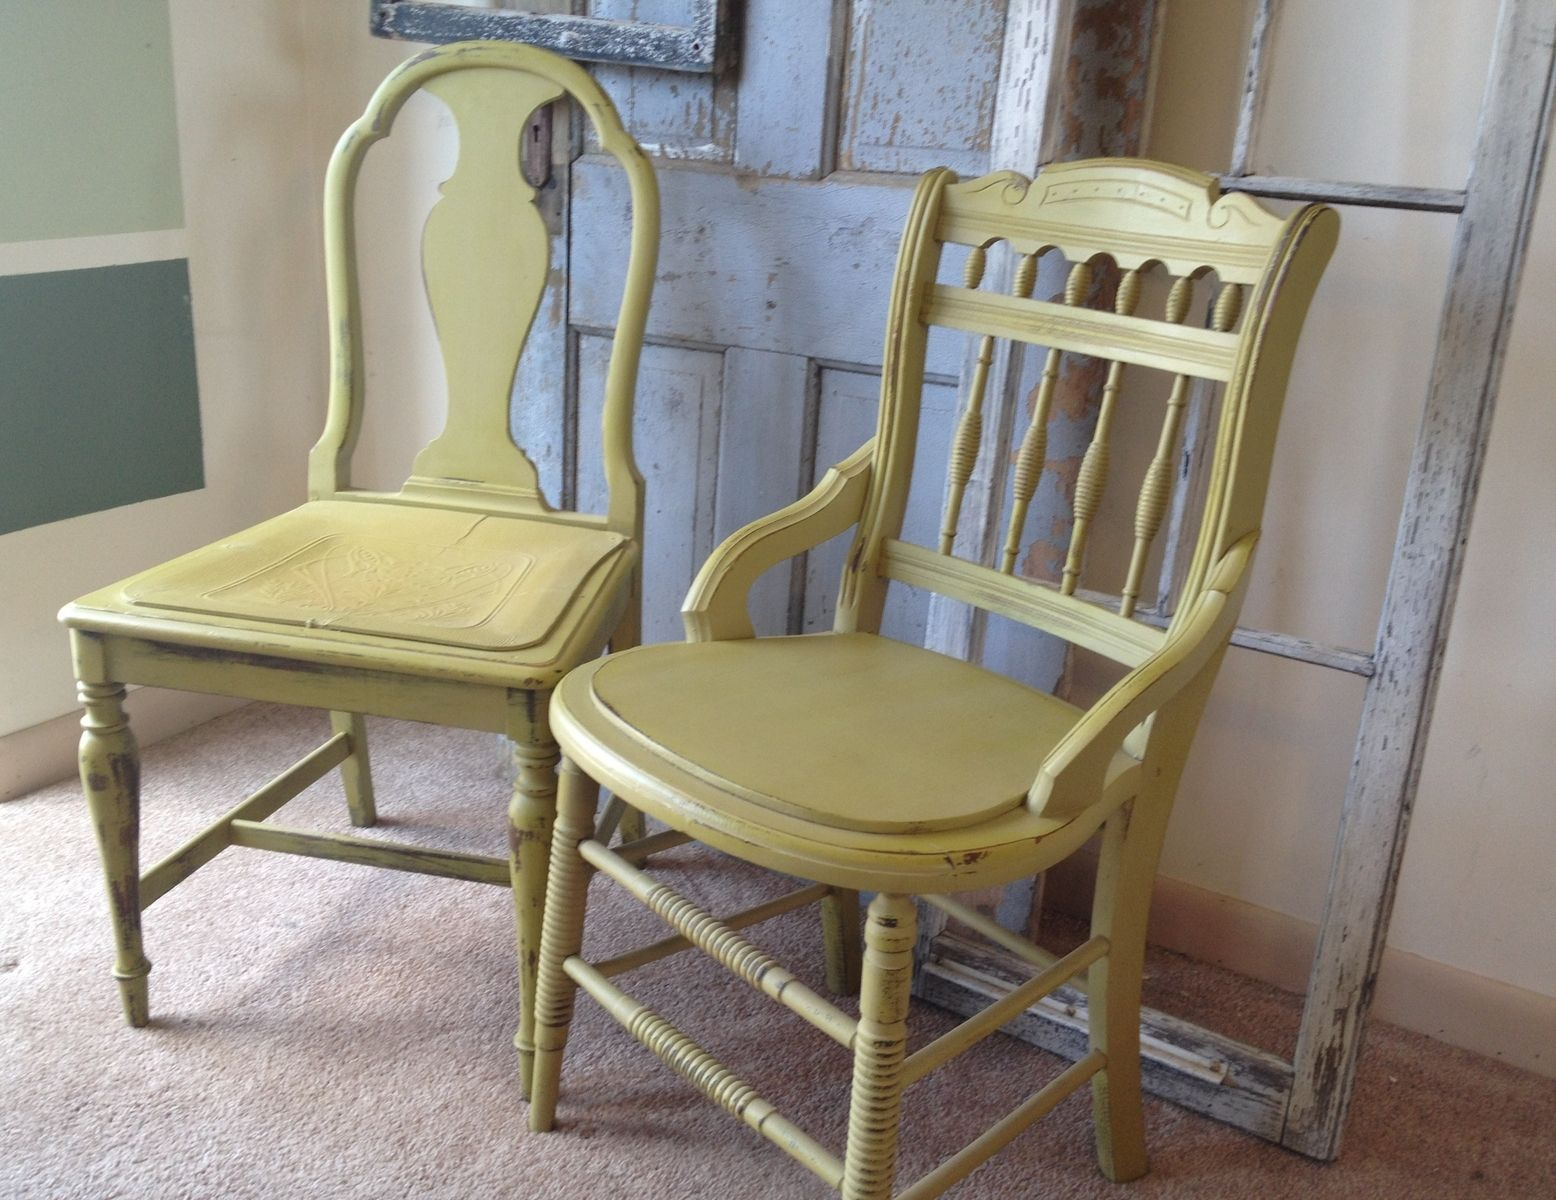 vintage kitchen chairs pull out cabinets hand crafted small table with four miss matched by hip decor distressed painted furniture custommade com